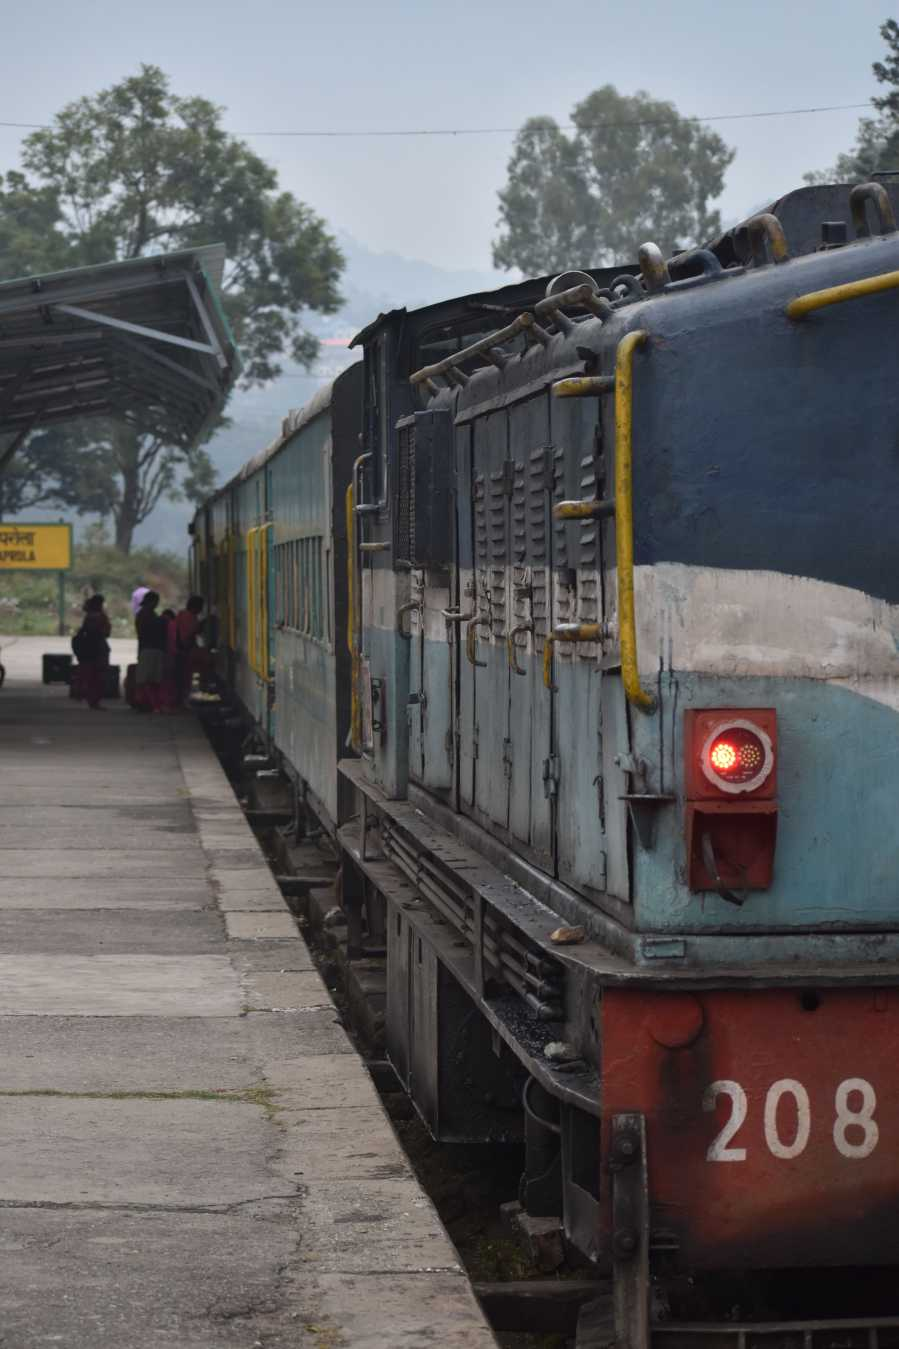 Toy Train in Himachal - Baijnath Paprola Railway Station